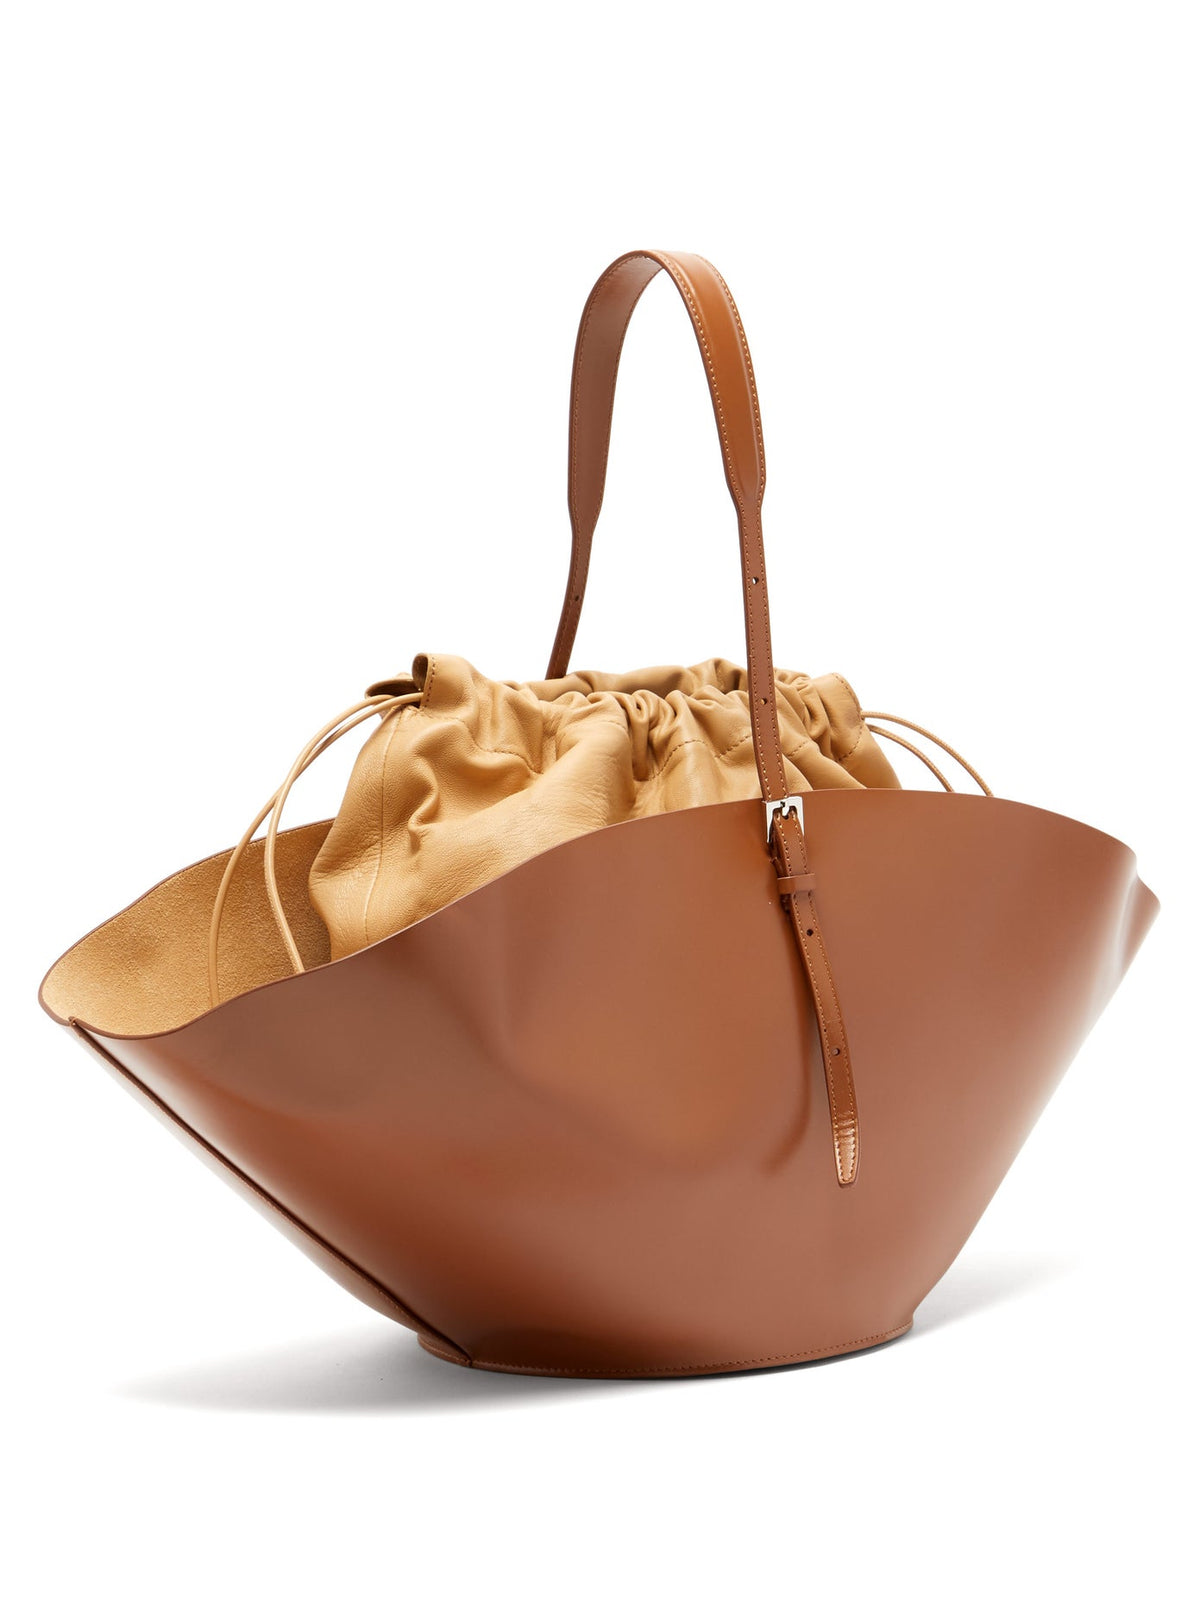 Sombrero Bag Medium - Caramel